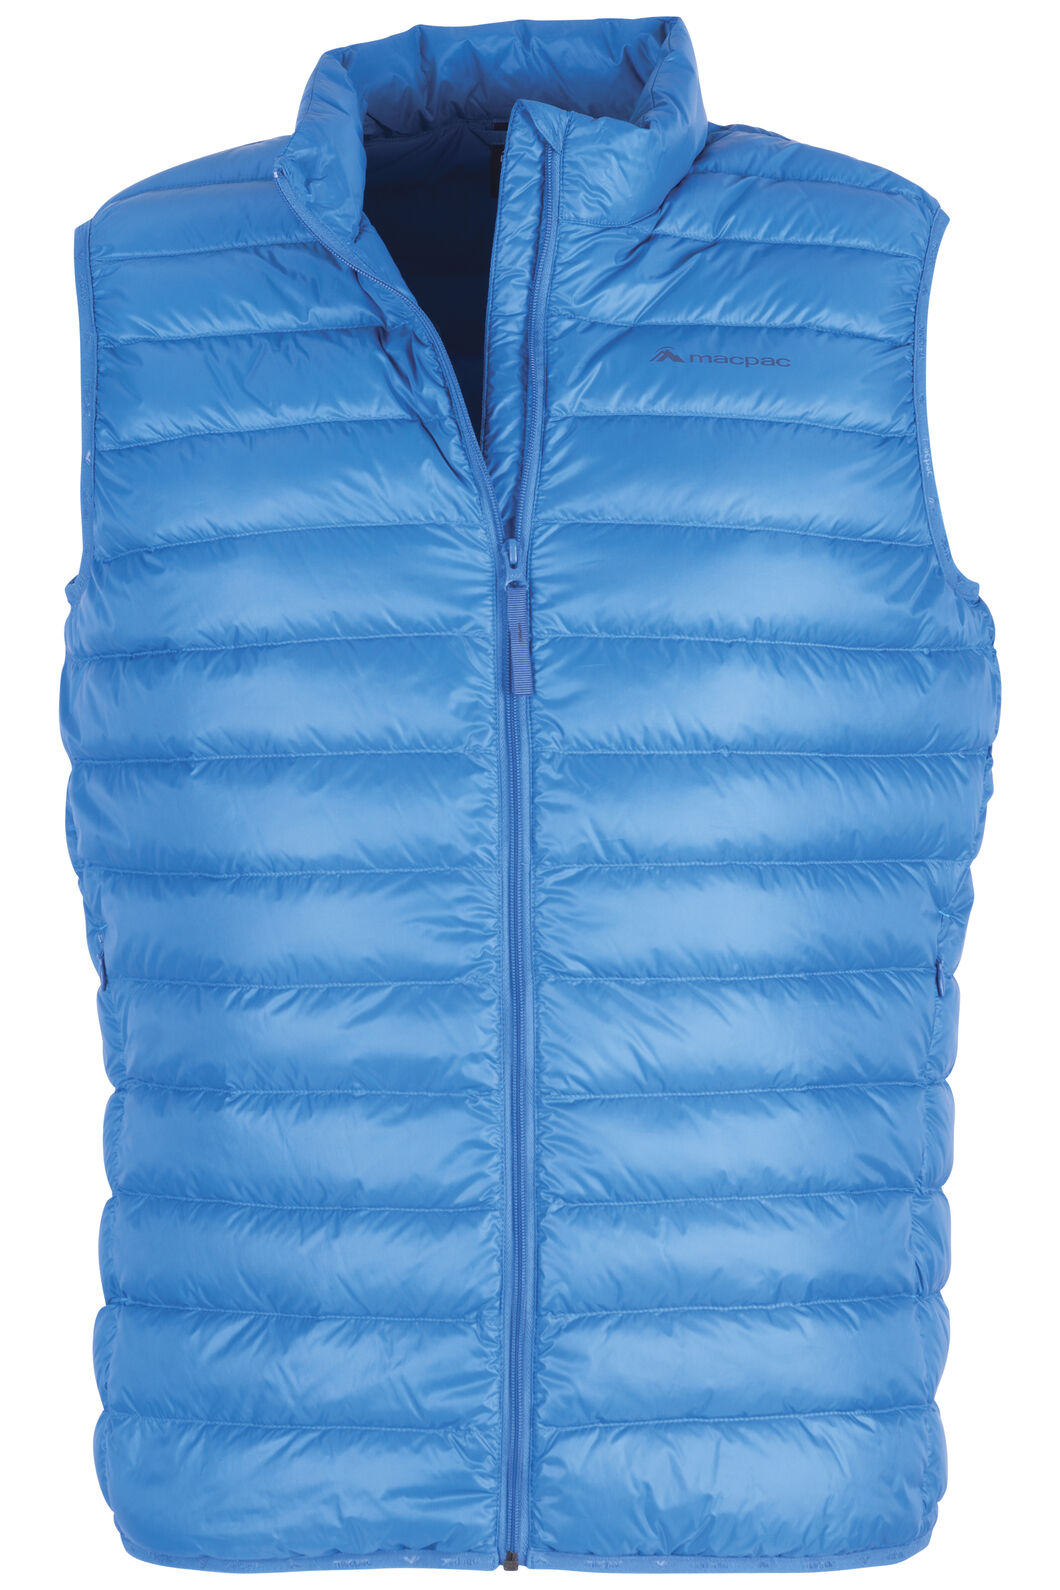 Uber Light Down Vest - Men's, Imperial Blue, hi-res